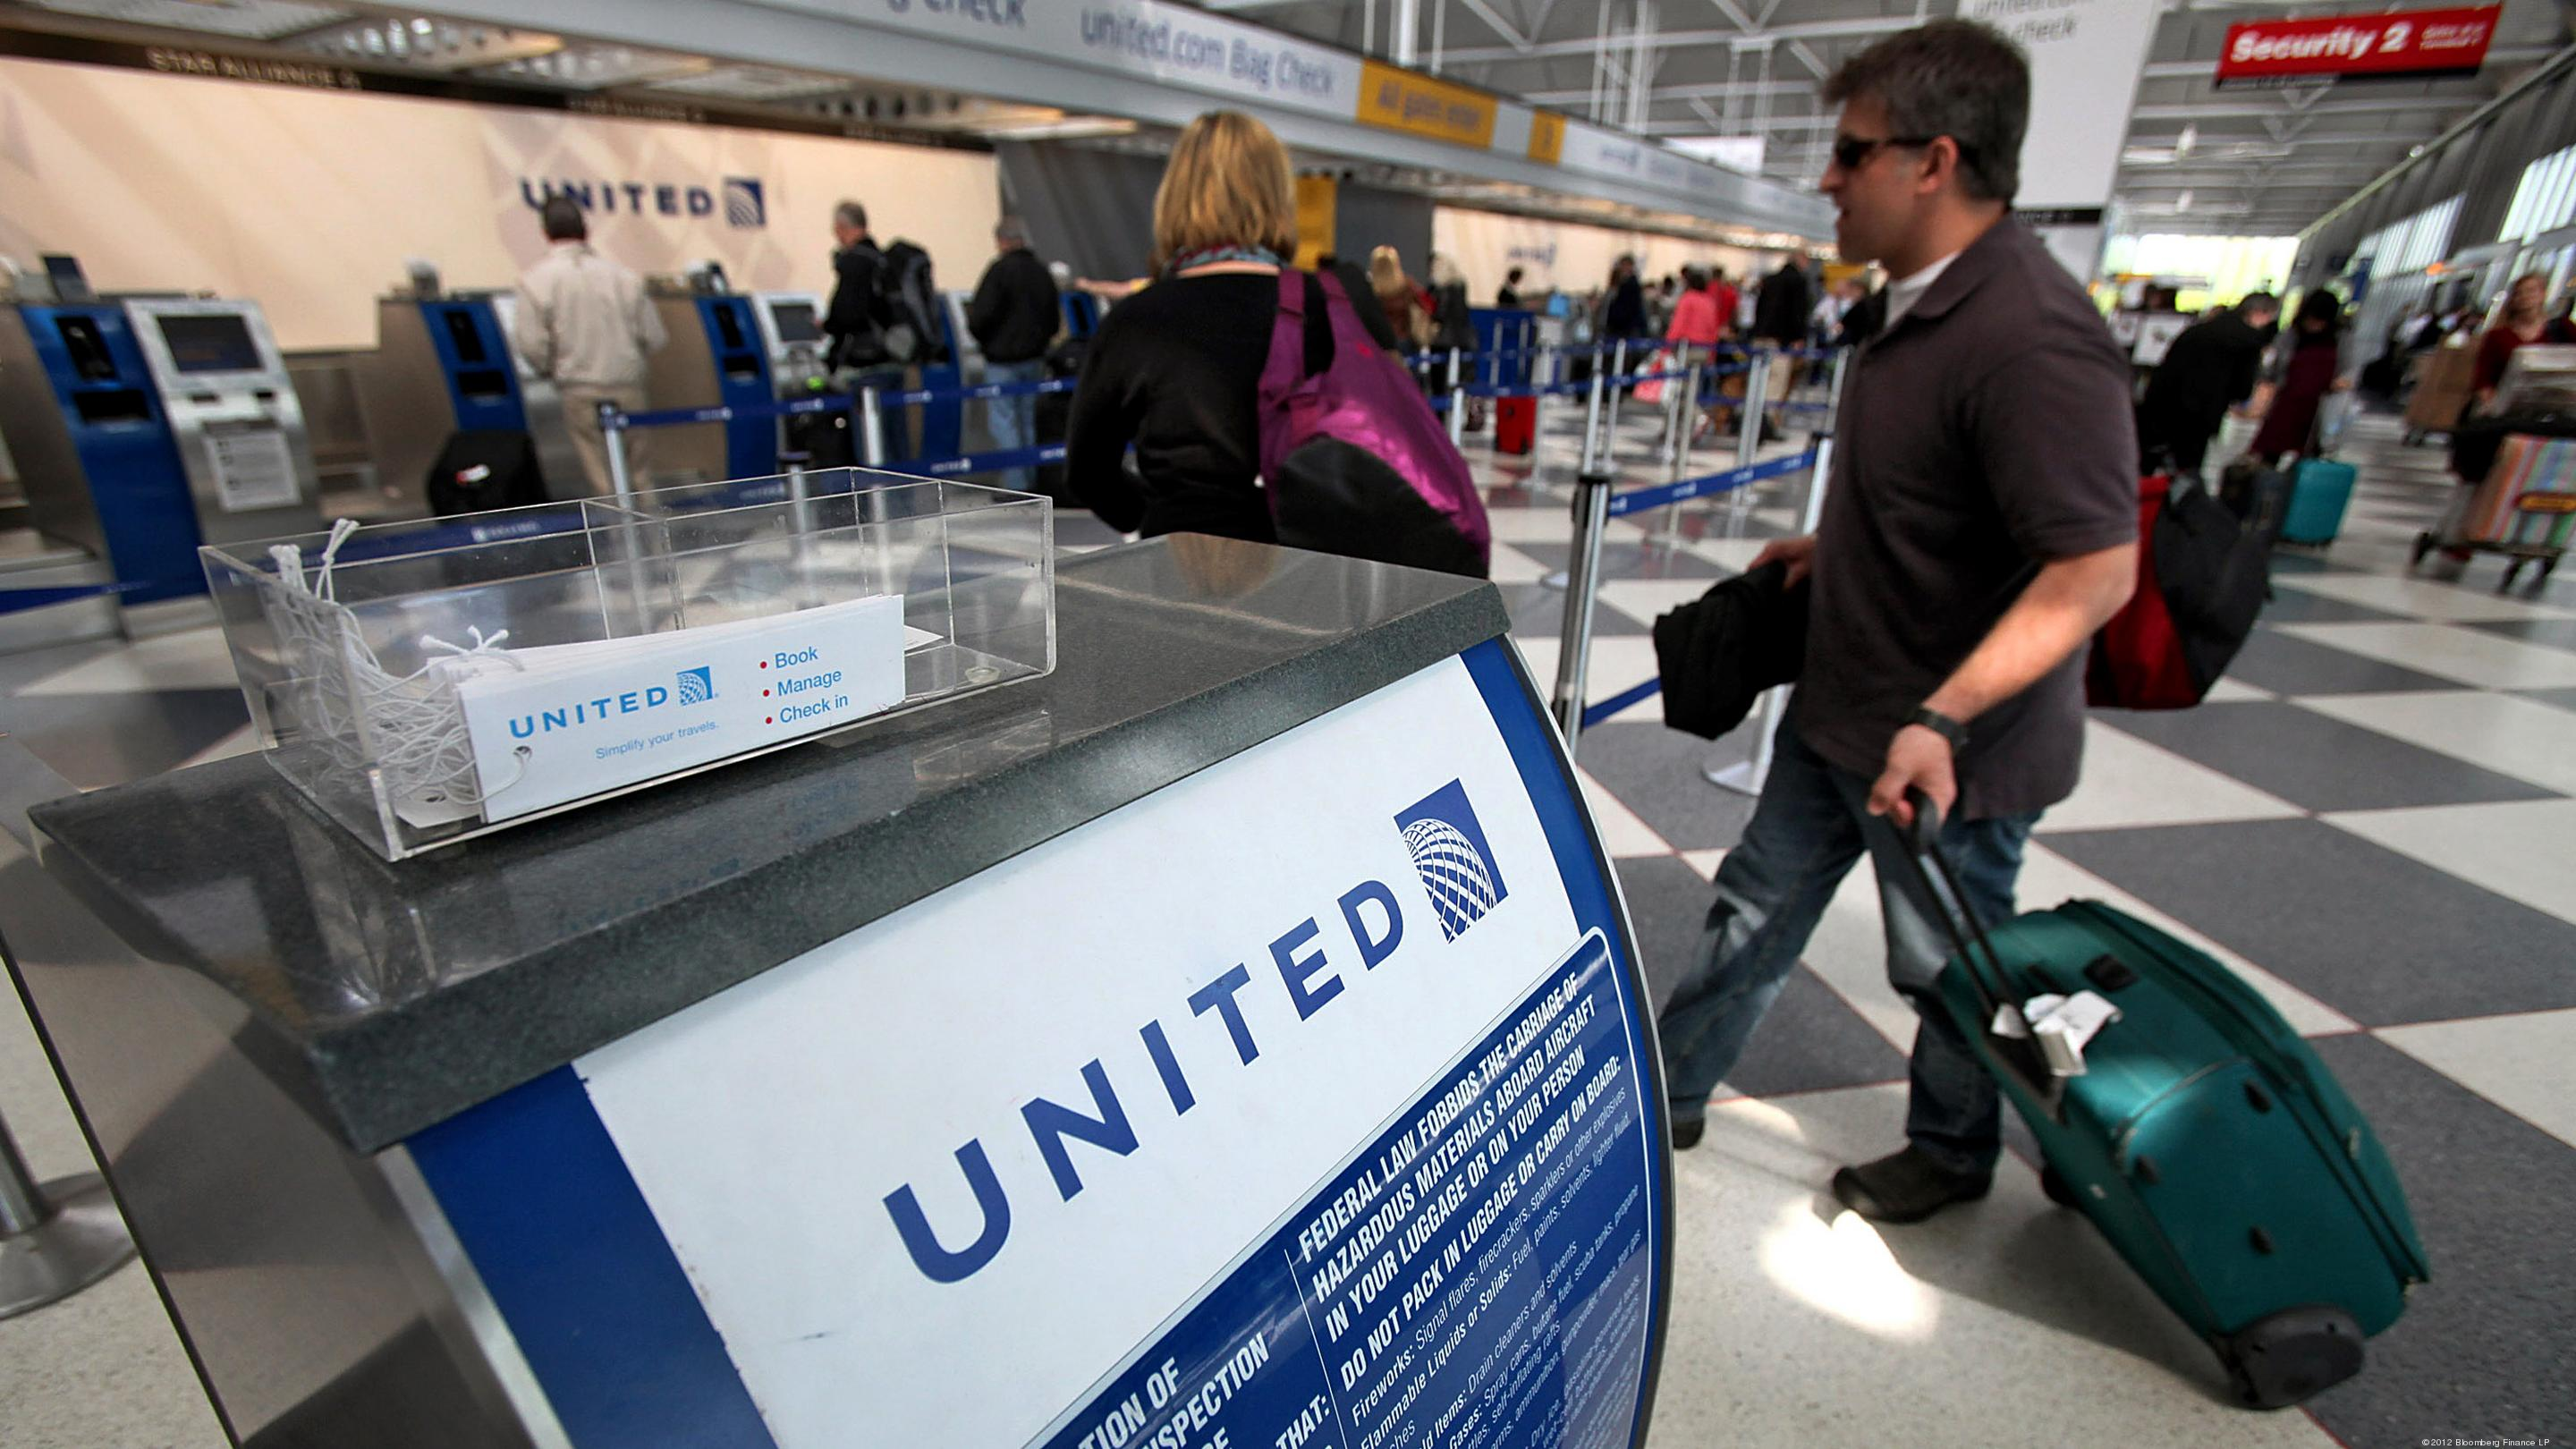 United defends decision barring girls from flight for wearing leggings